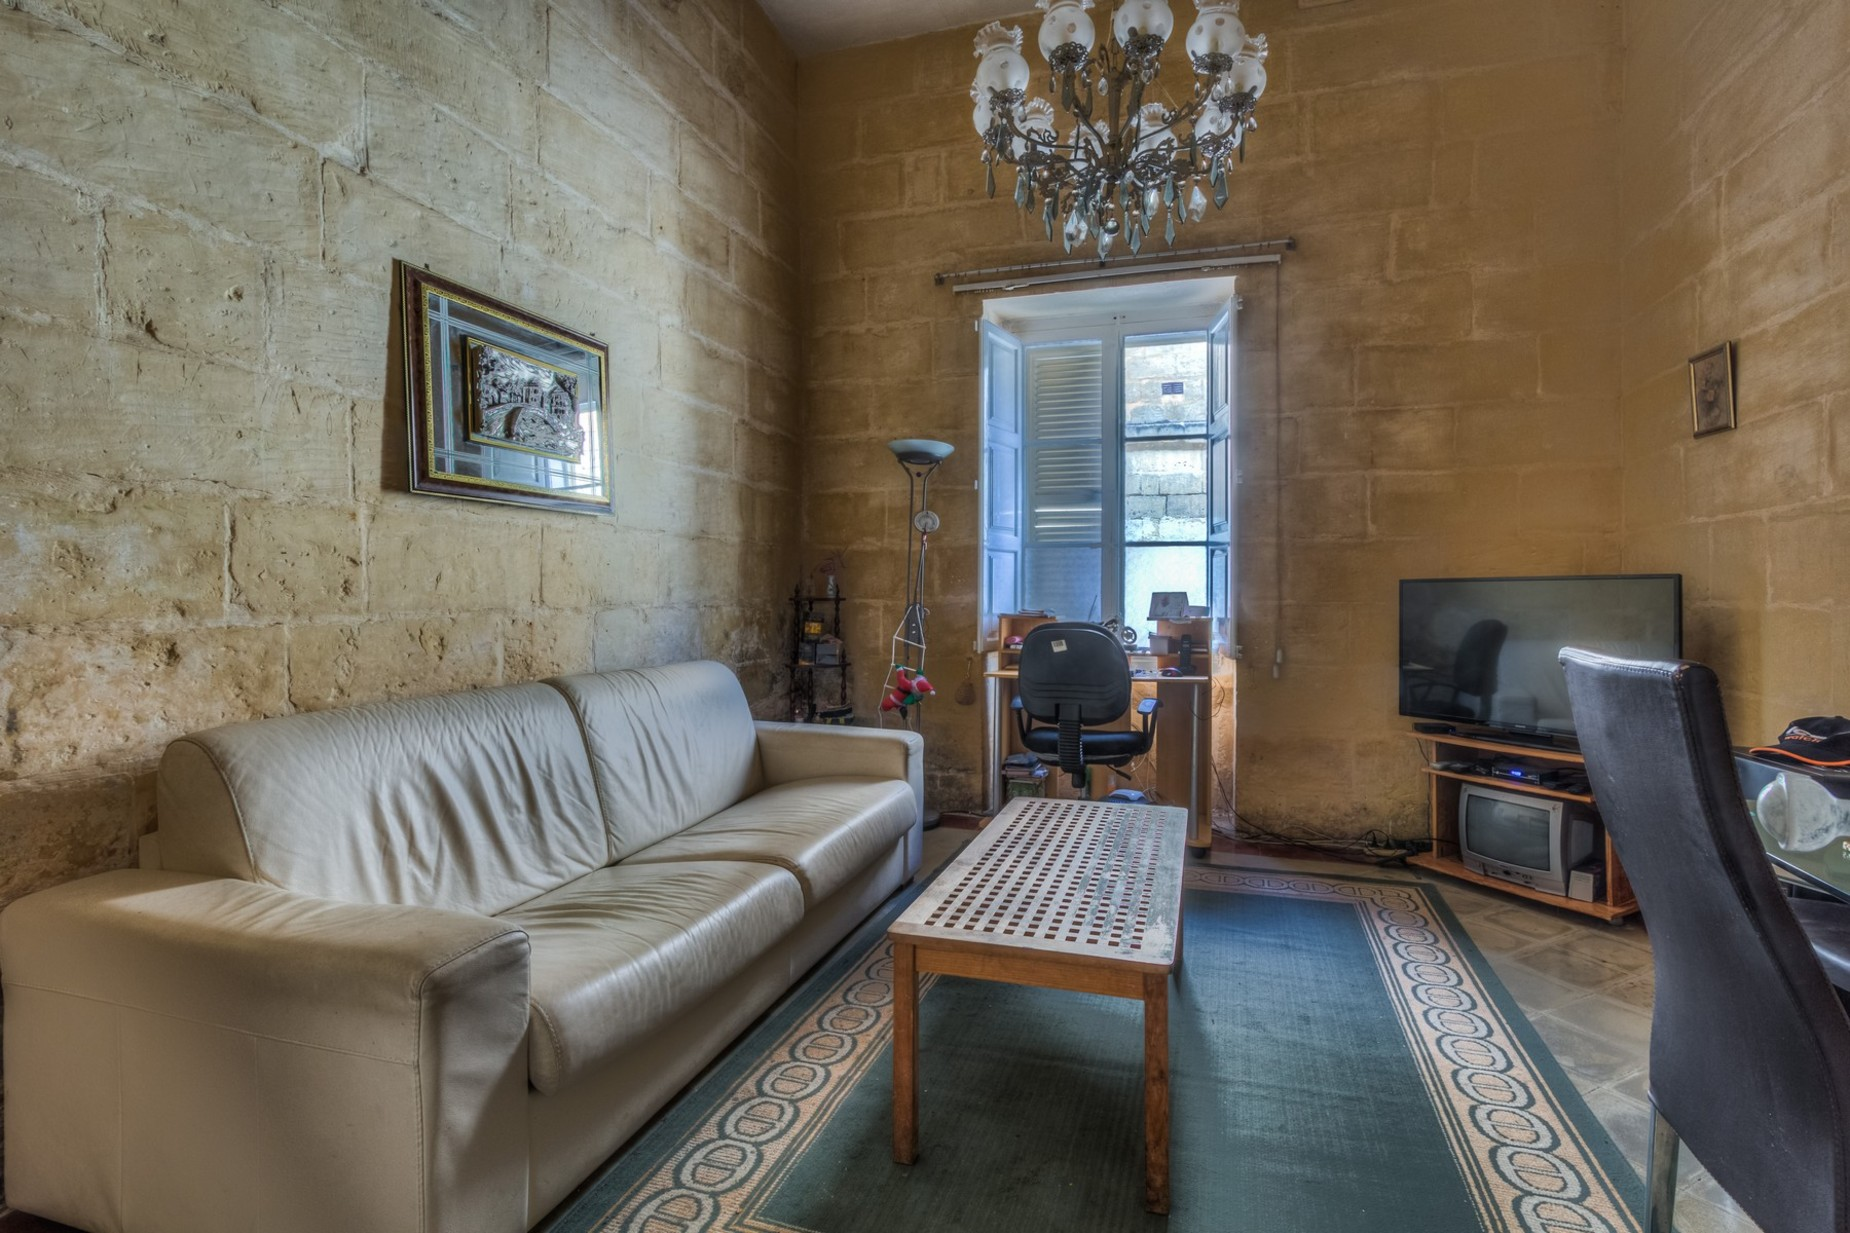 5 bed Town House For Sale in Rabat, Rabat - thumb 6